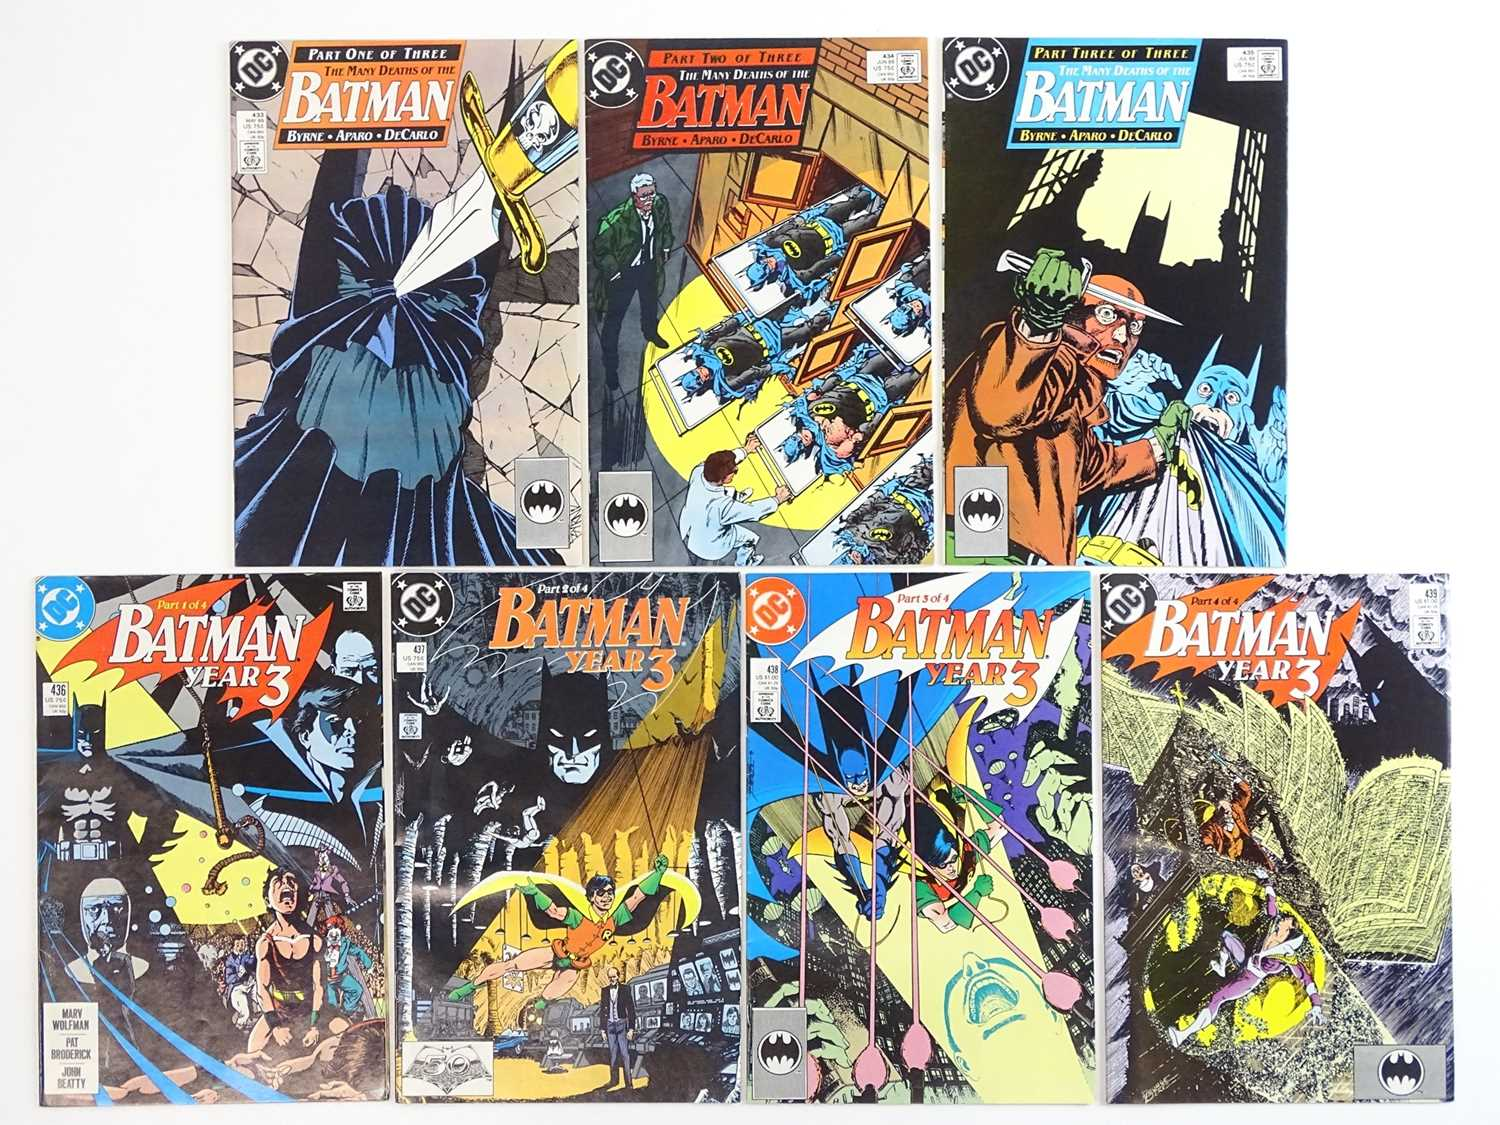 BATMAN #433, 434, 435, 436, 437, 438, 439 - (7 in Lot) - (1989 - DC) - First Printing - Two complete